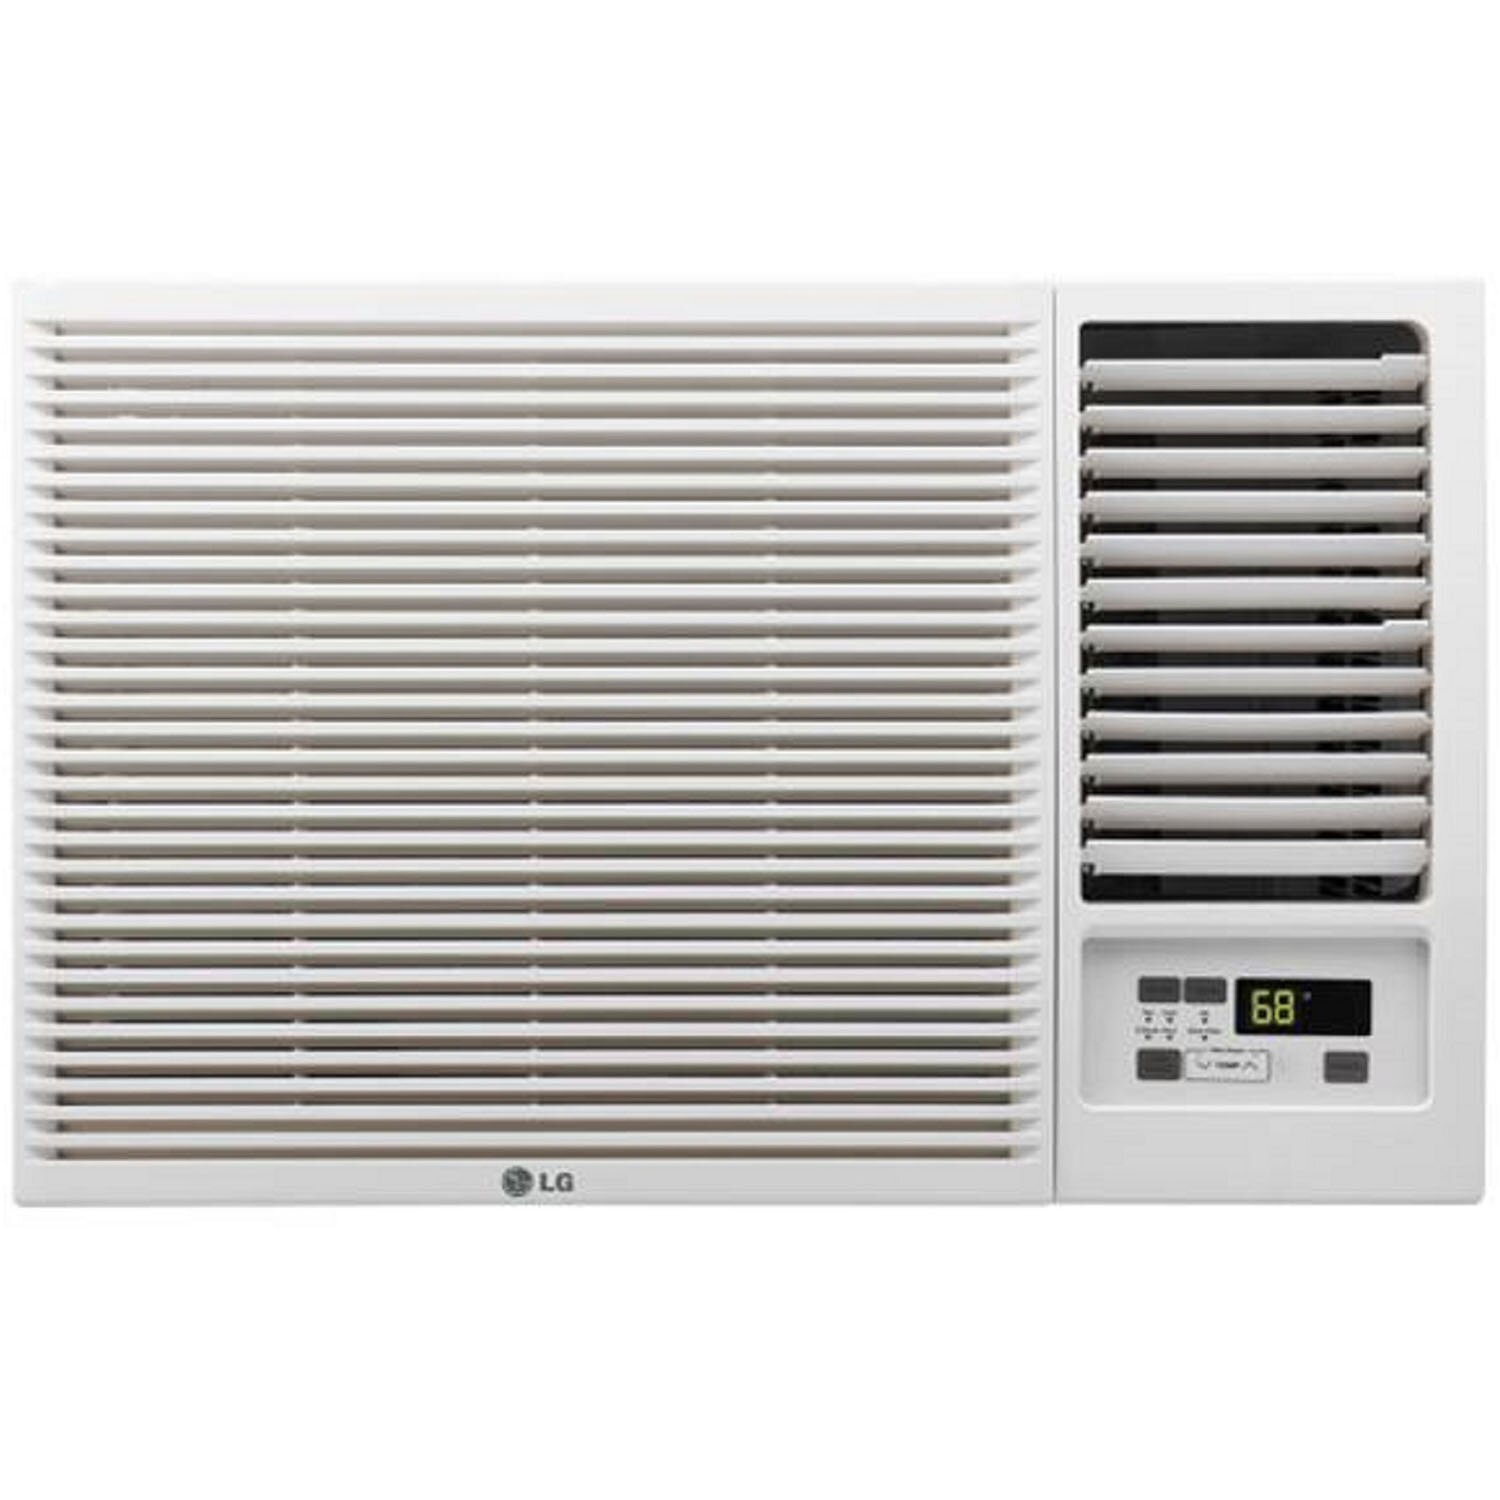 Lg 12000 btu window air conditioner wayfair for 12 000 btu window air conditioner with heat